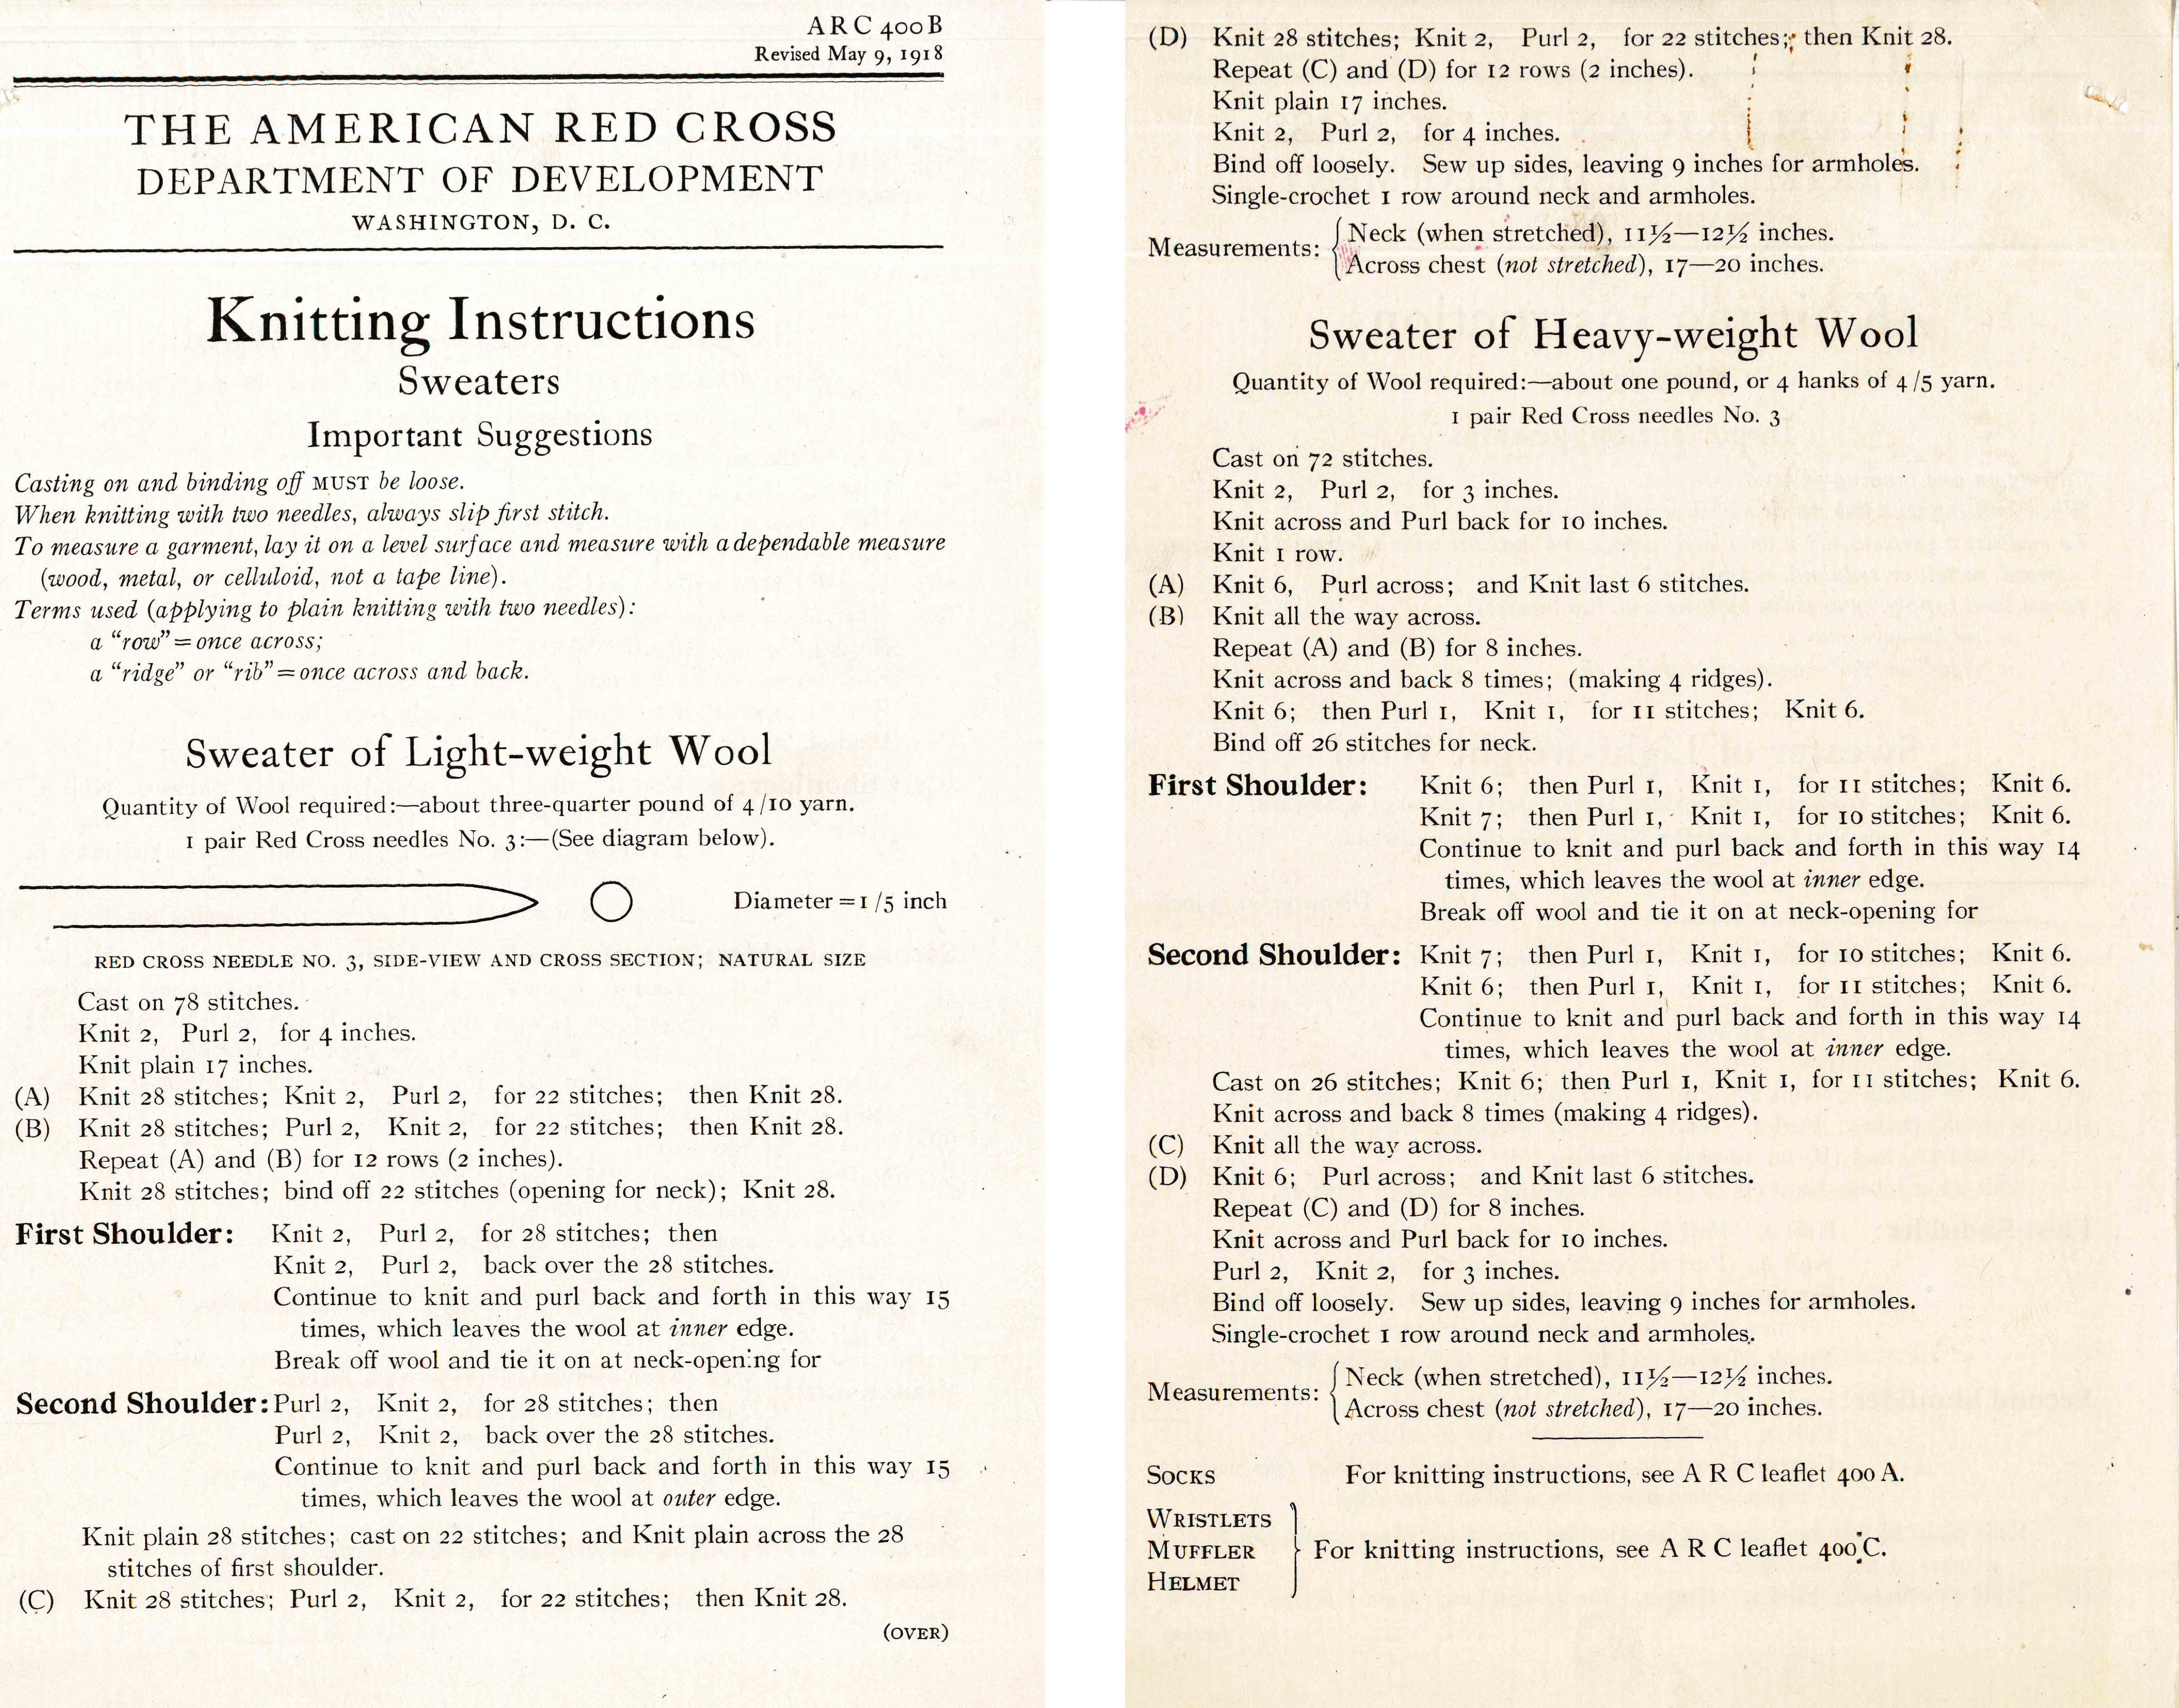 """Knitting Instructions: Sweaters"" ARC 400-B, Sleeveless sweater pattern issued by the American Red Cross in May 1918 as a revision to one issued in 1917."